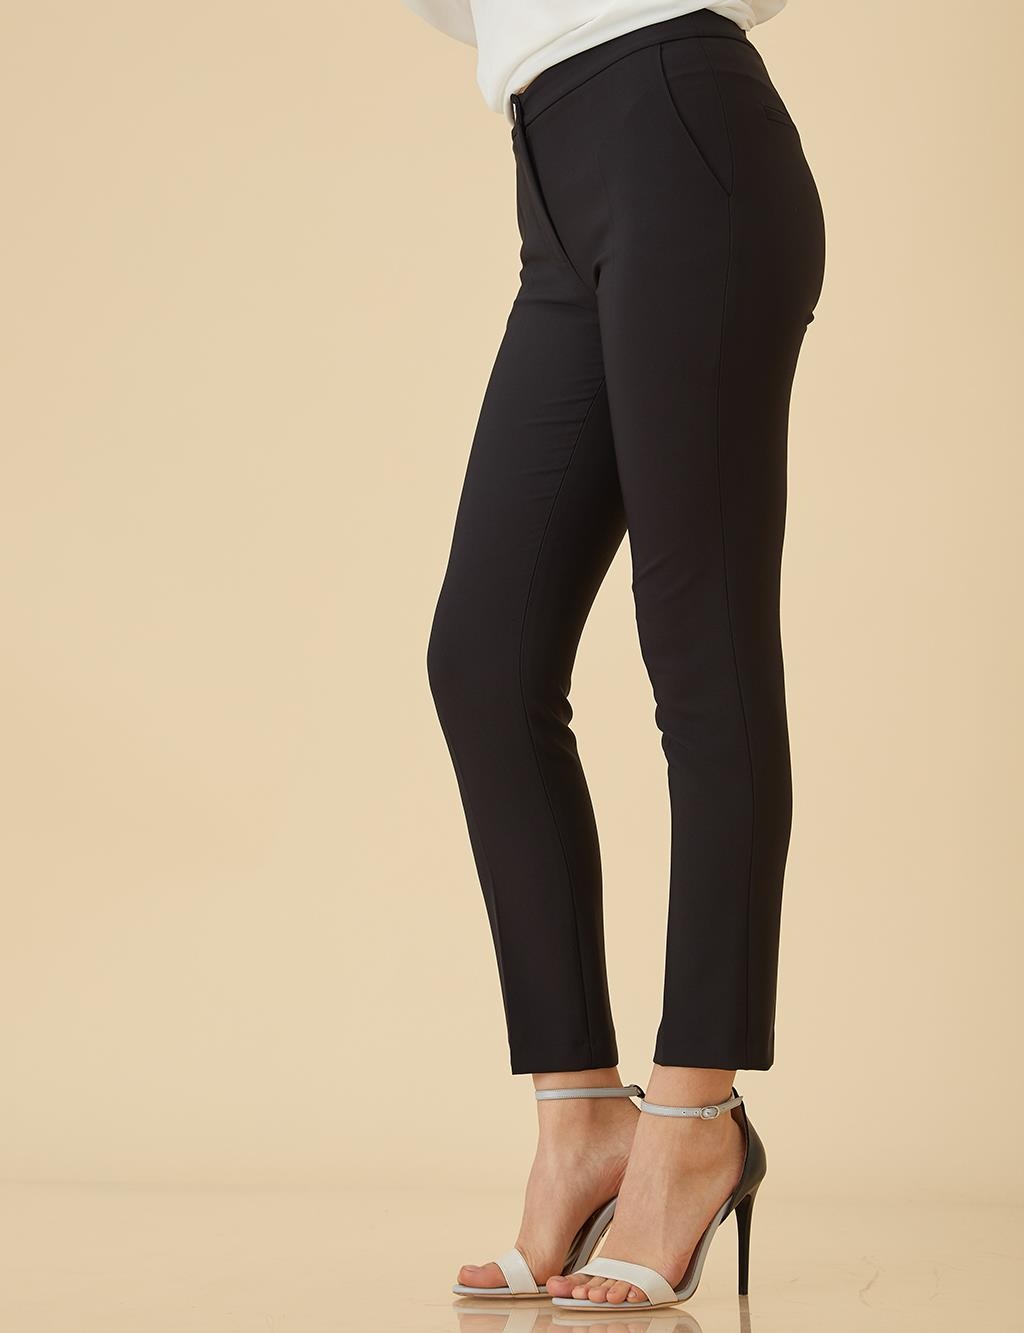 Basic Tight Pants SZ-19501 Black